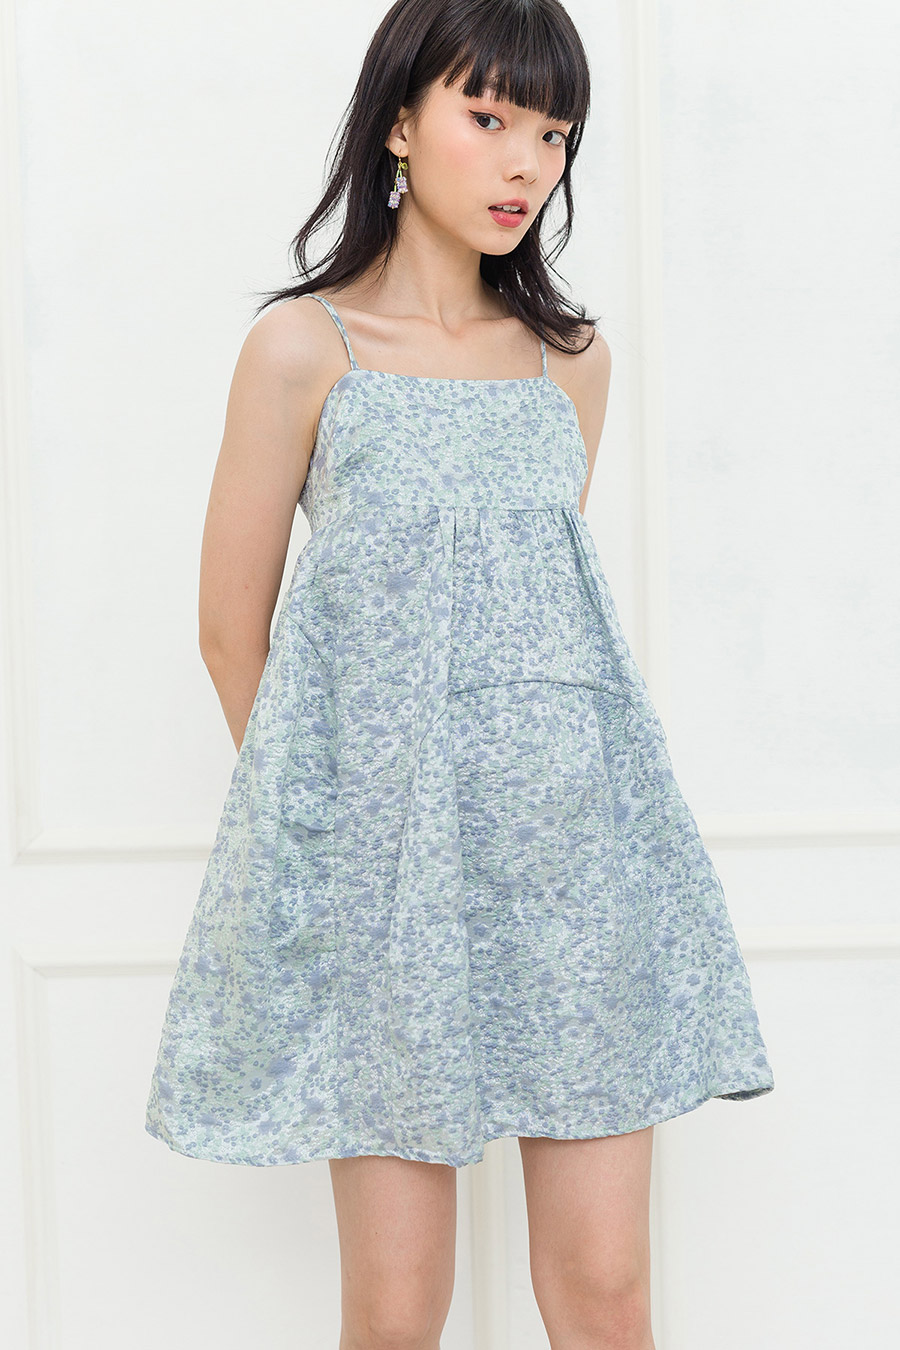 *BO* WALTON DRESS - STARLIGHT